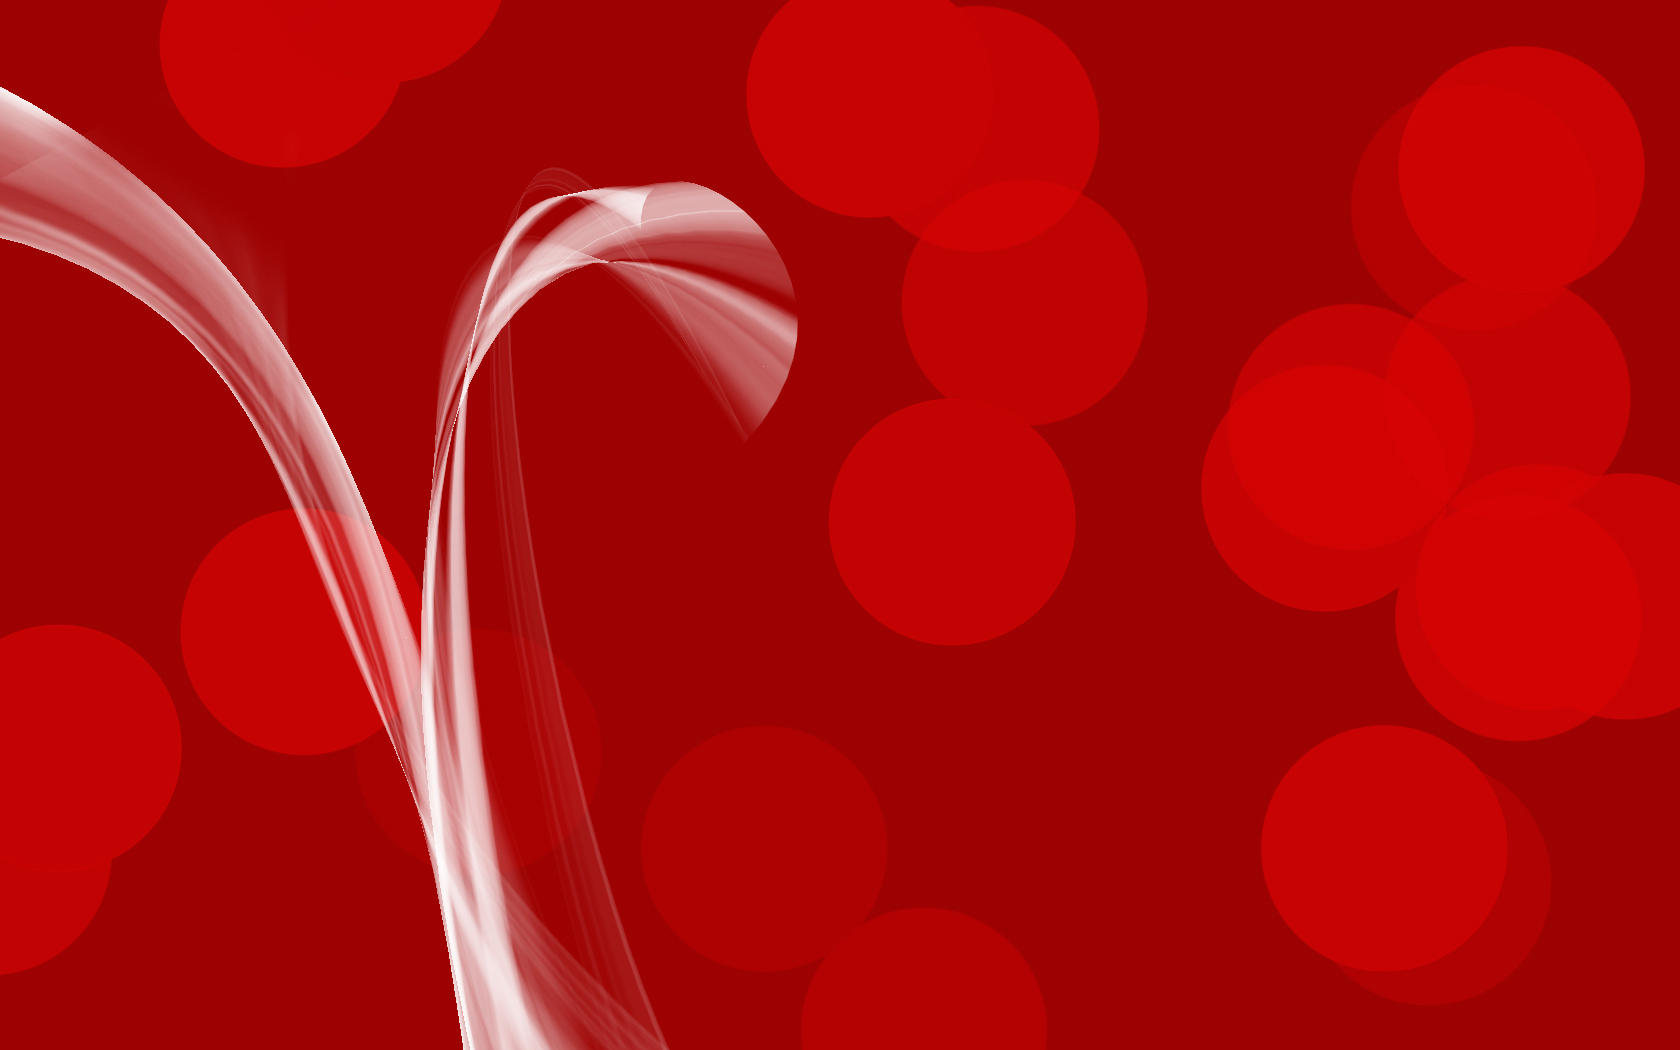 Christmas Candy Canes Wallpaper Cane wallpaper   www 1680x1050